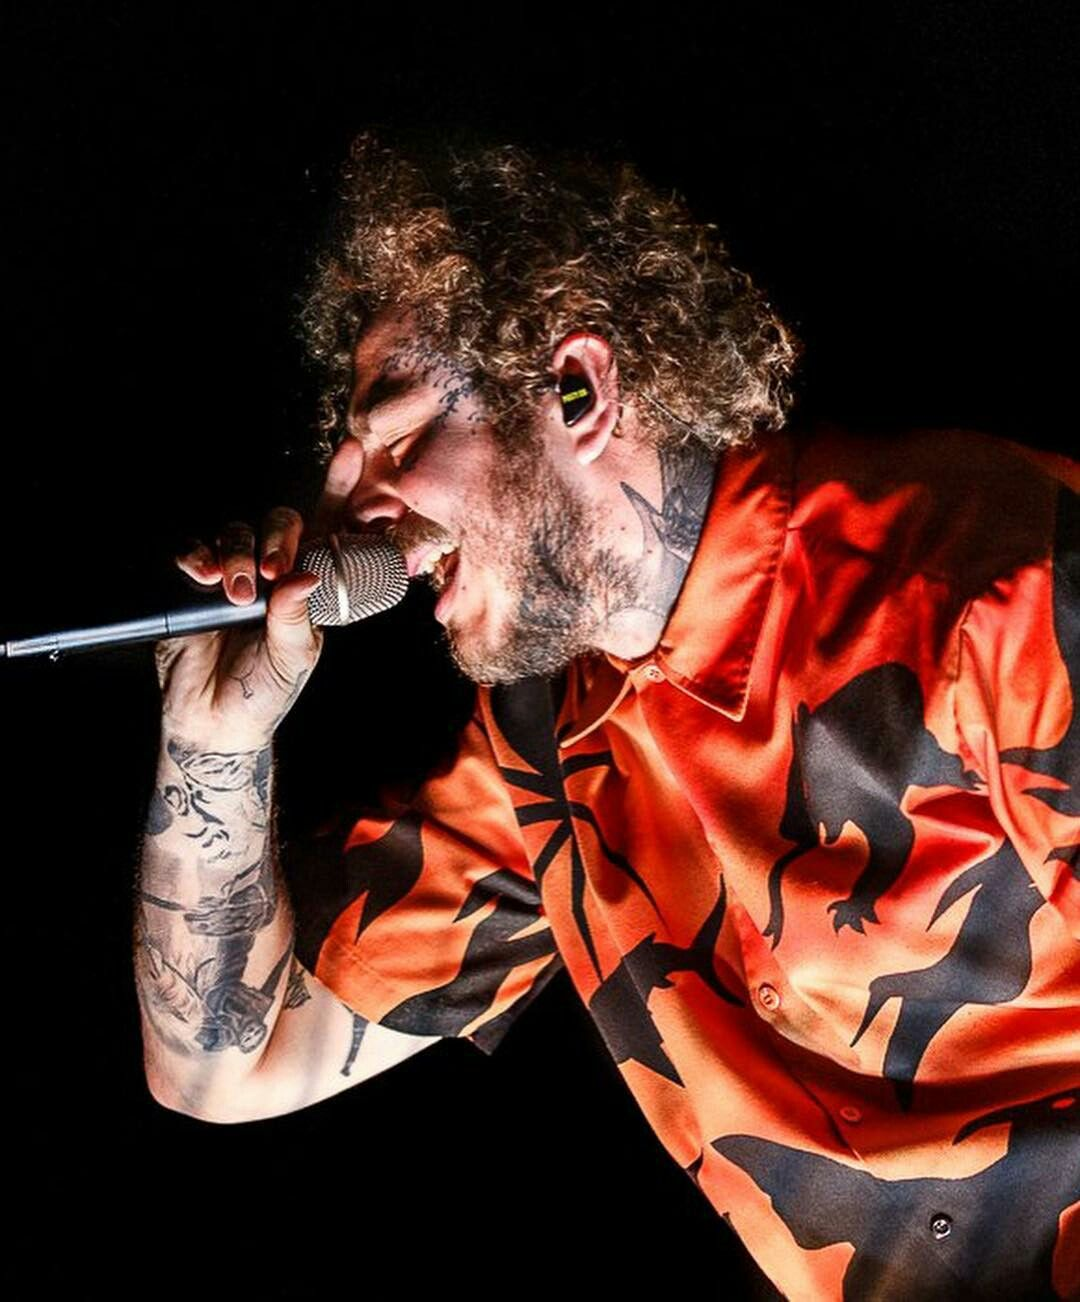 Pin by Annie January Nichter on Post Malone Post malone